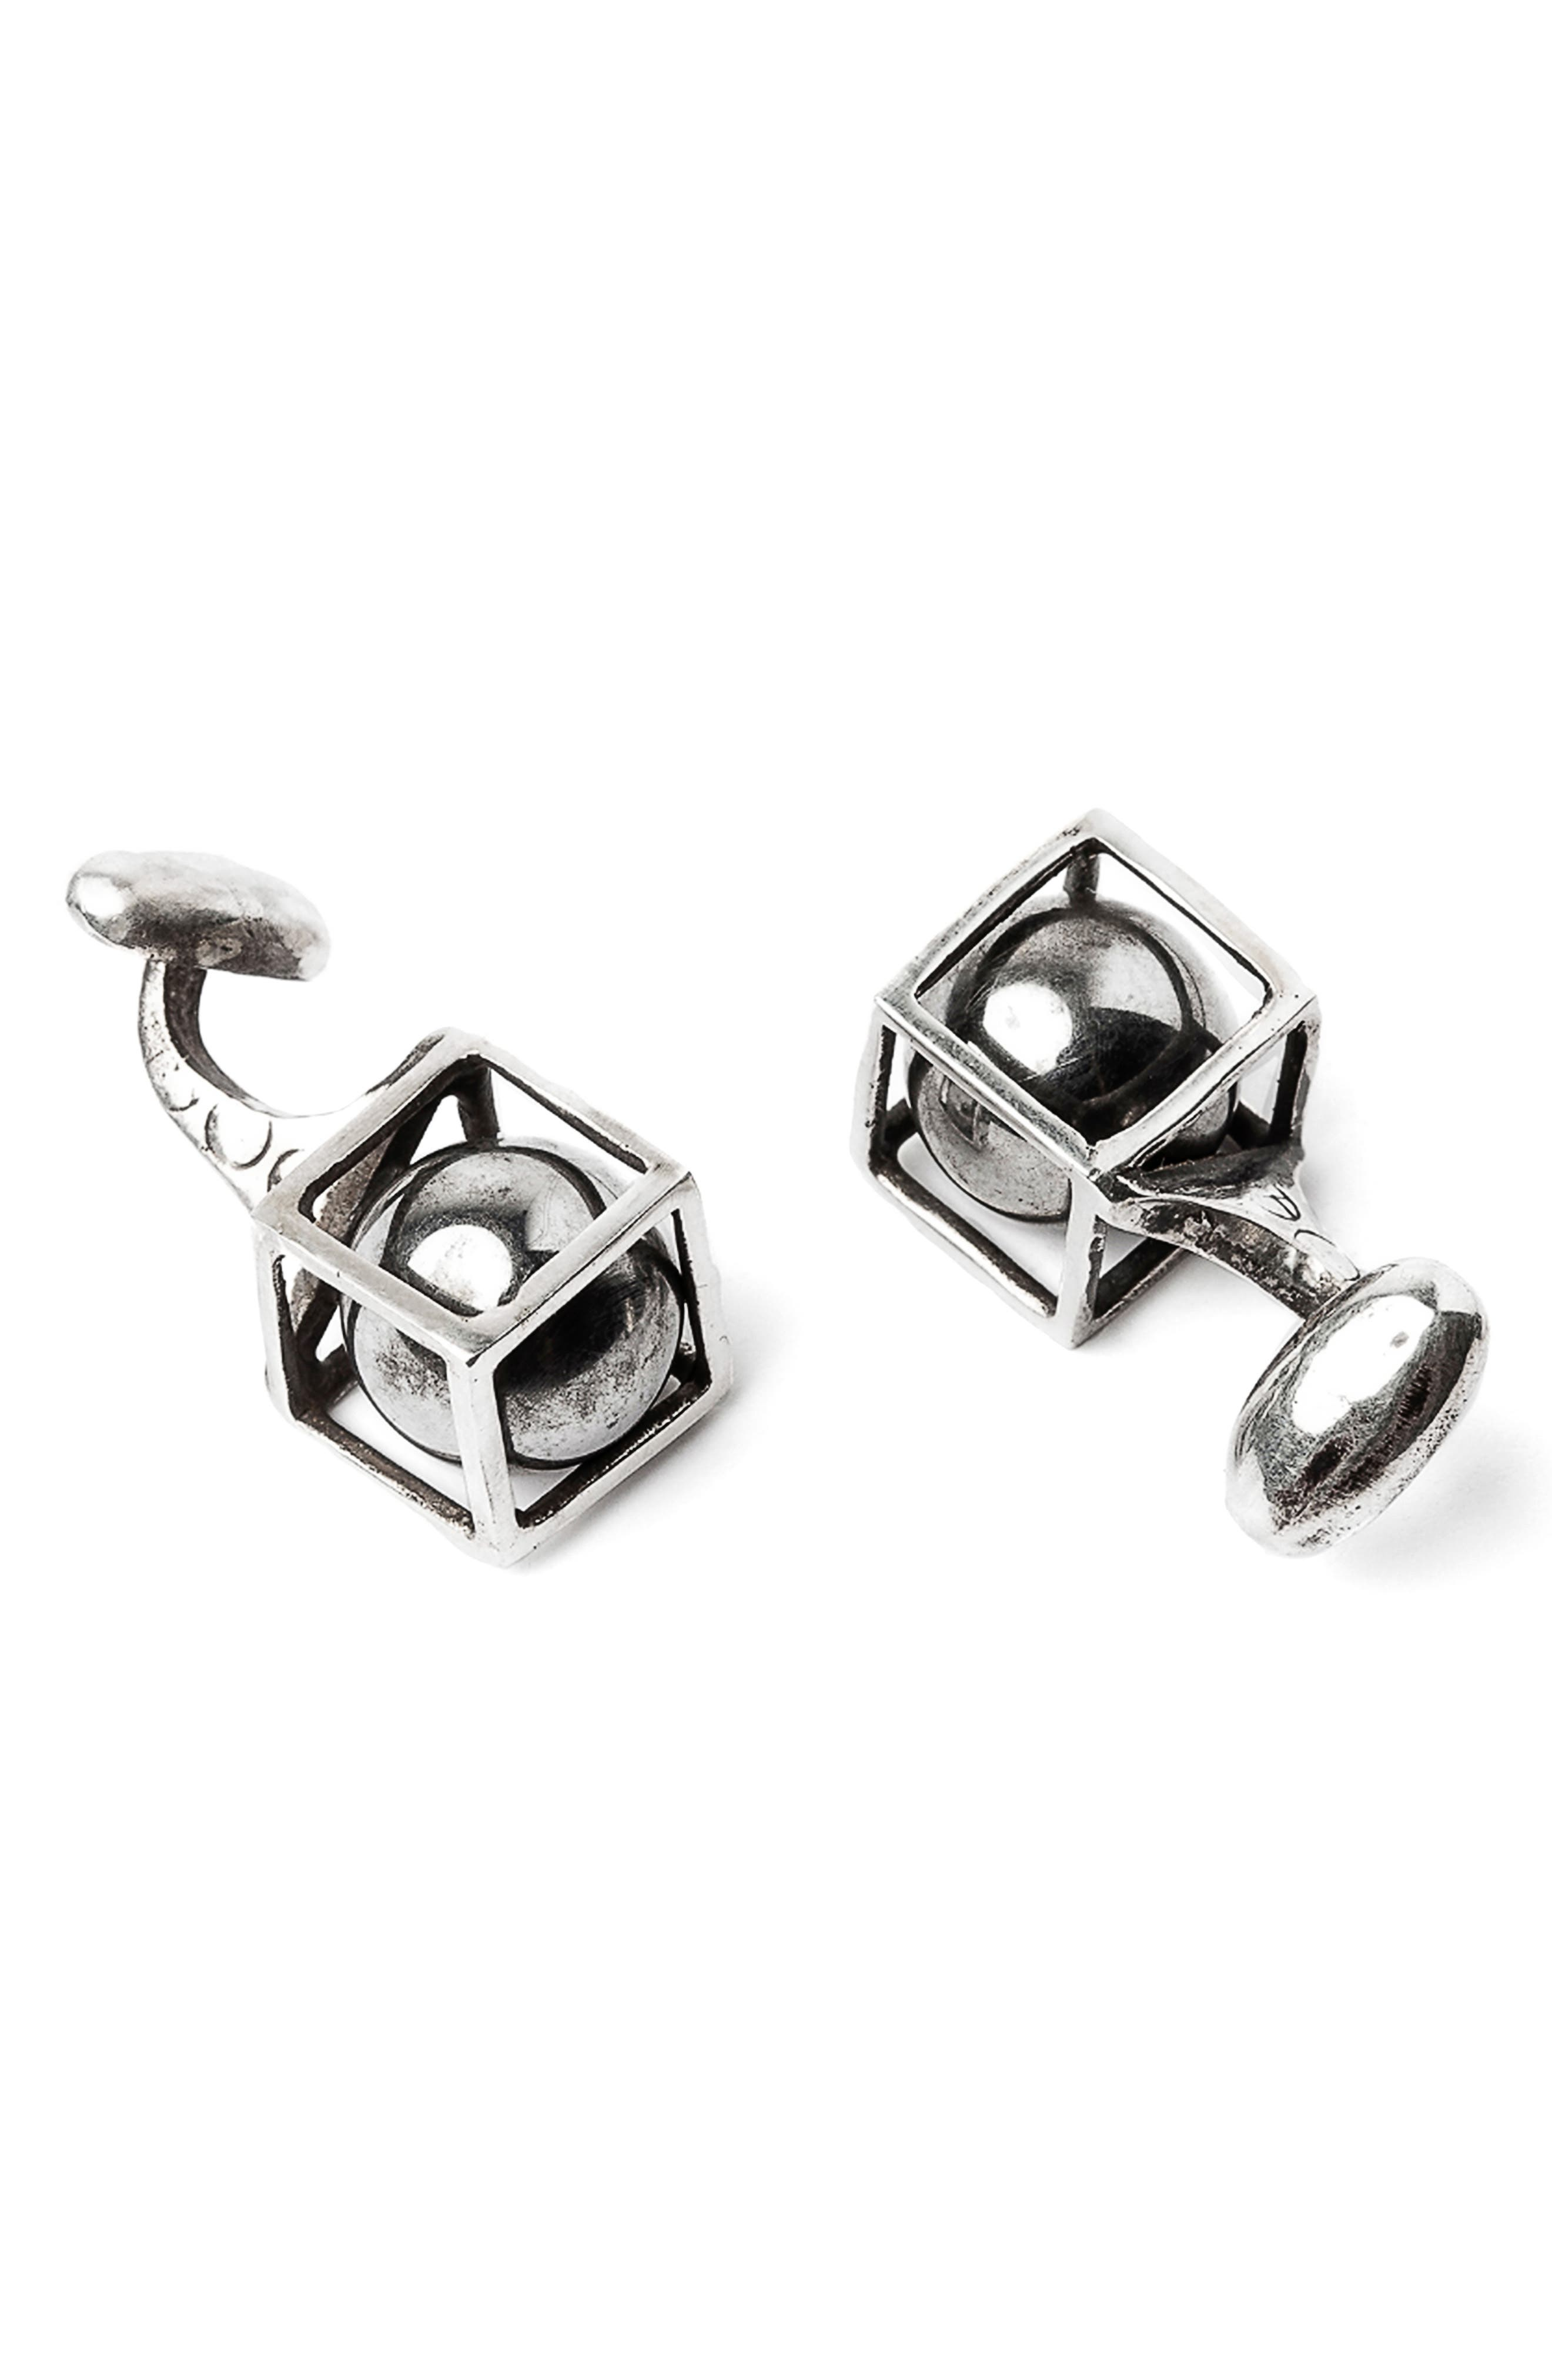 Sphere in Cube Cuff Links,                         Main,                         color, Silver